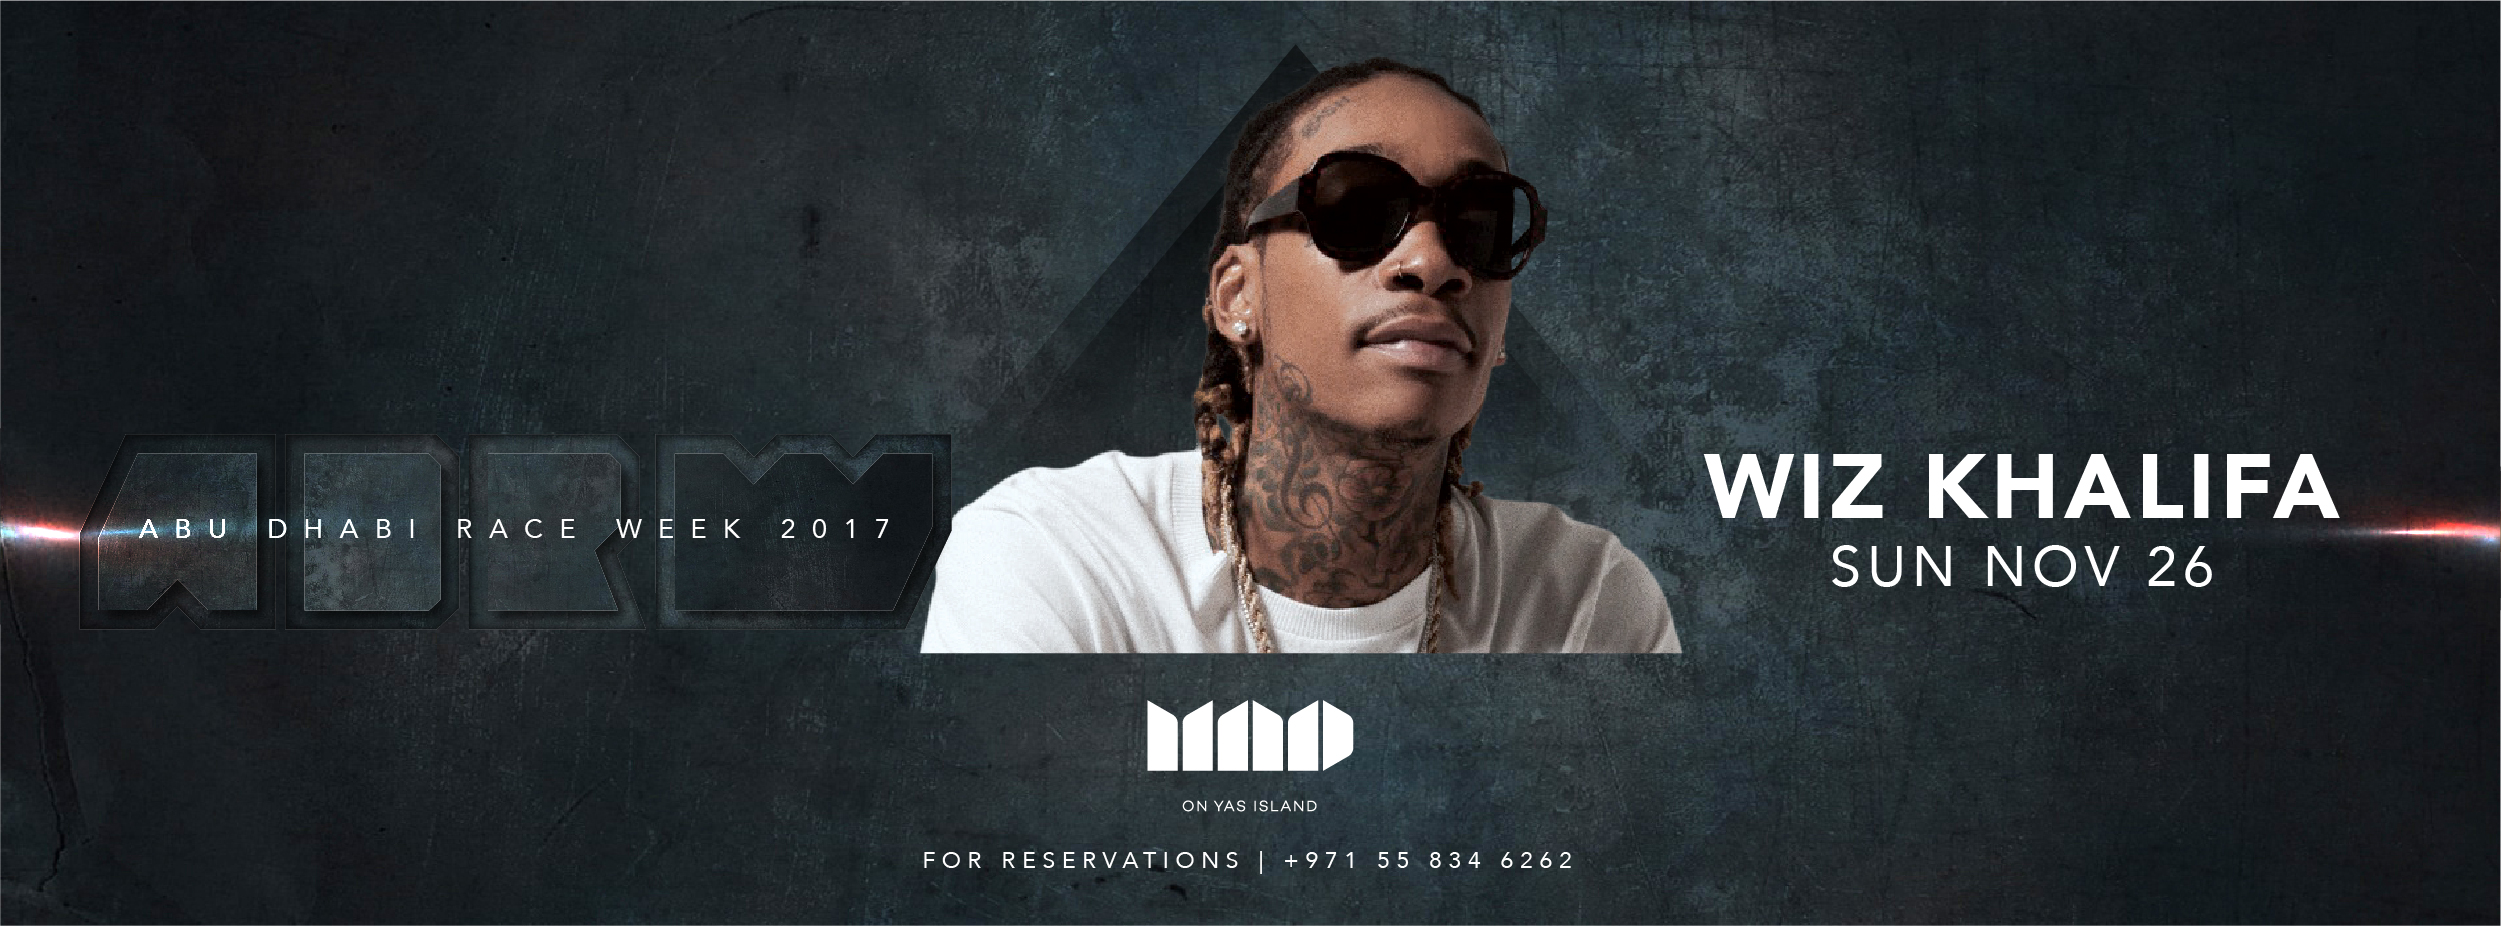 Wiz Khalifa @ MAD